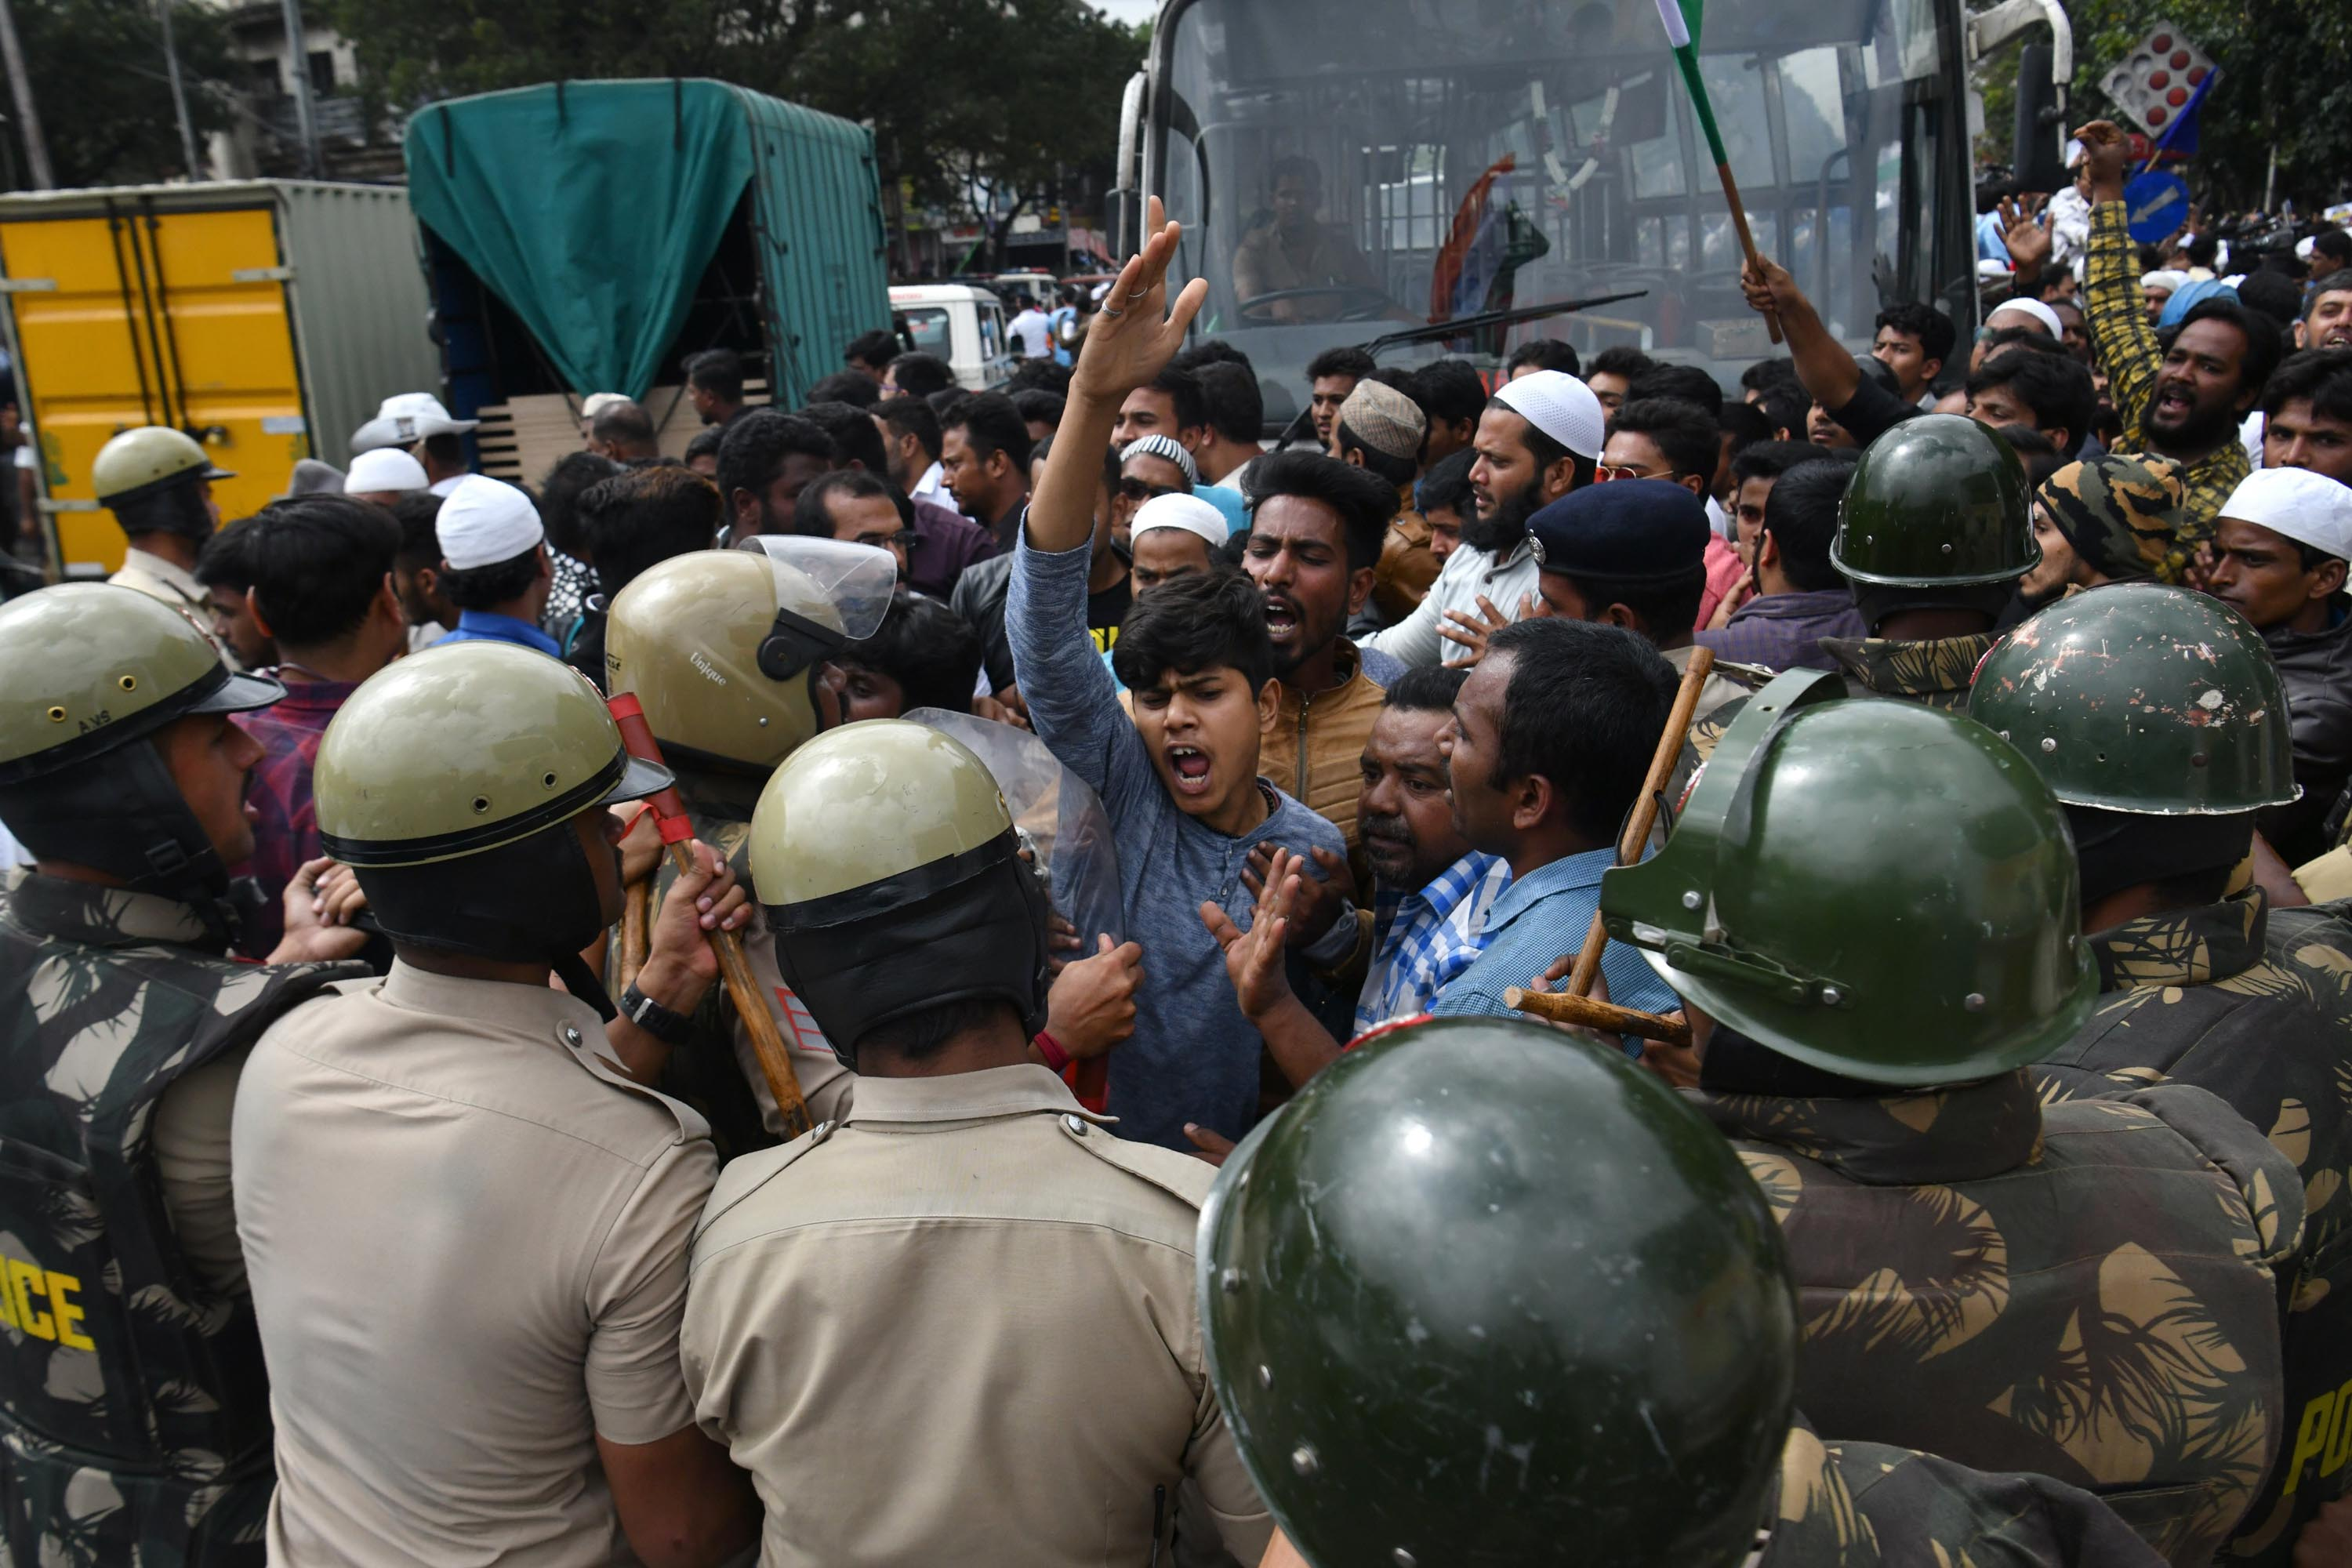 Police and protesters clash in Bangalore. Photo: Manjunath Kiran/AFP via Getty Images